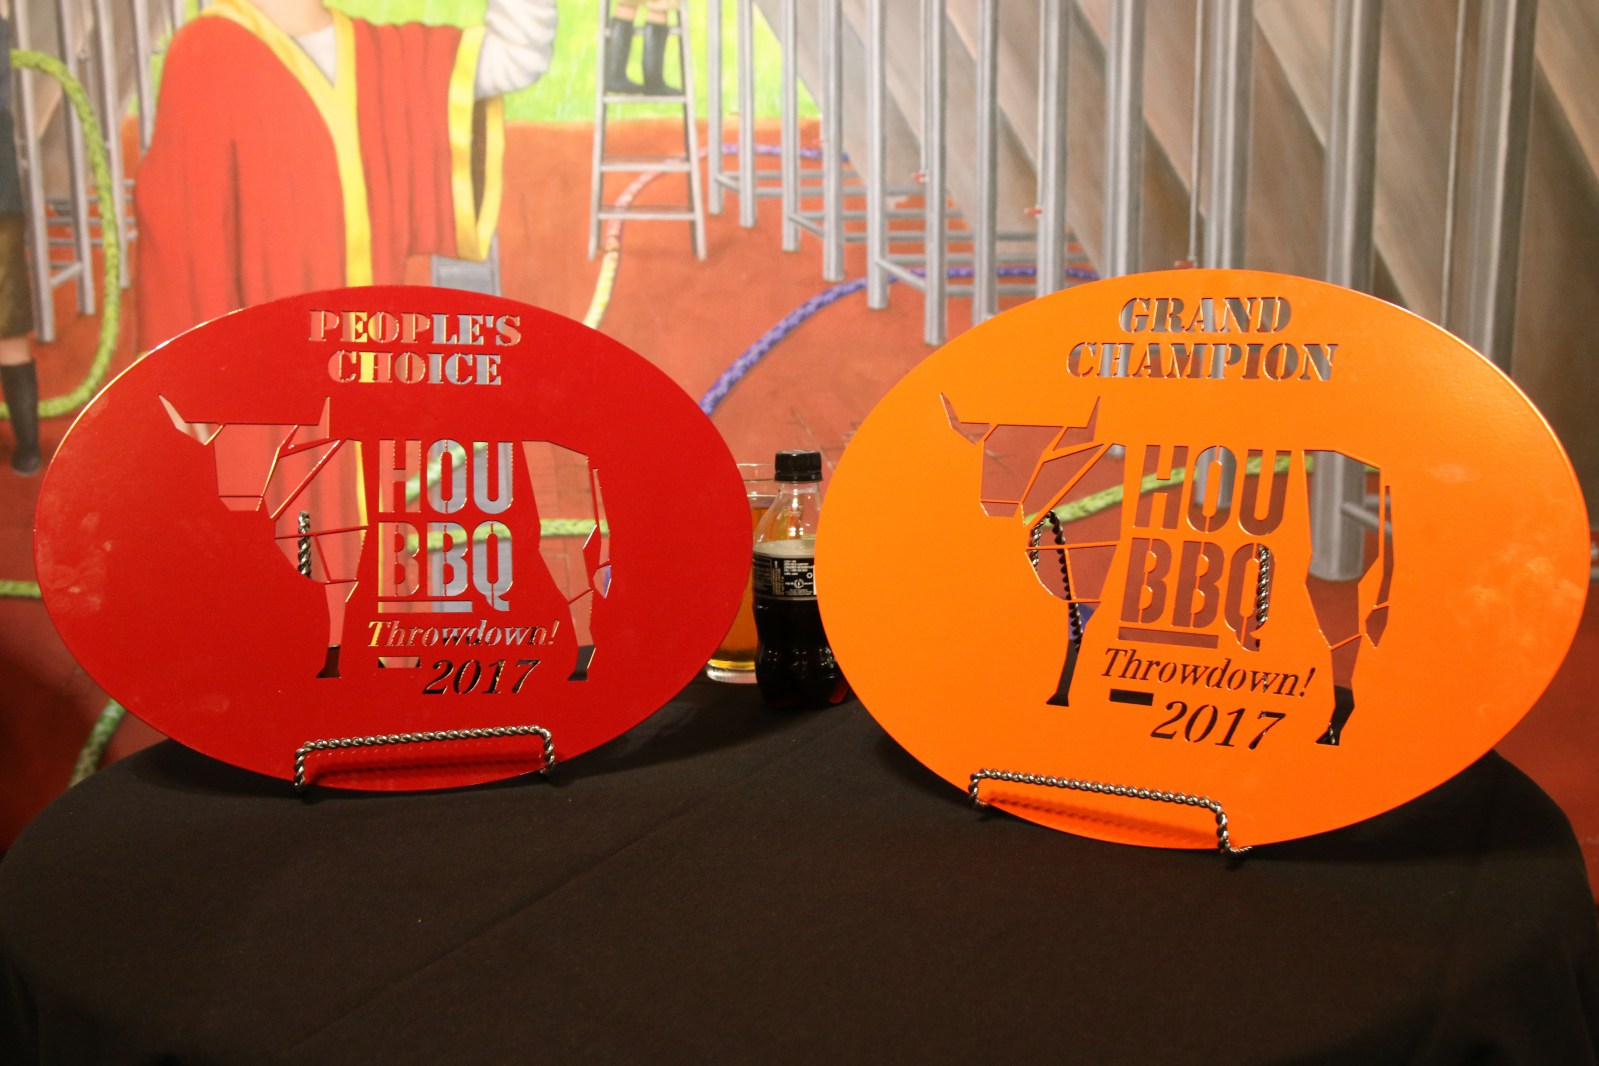 HOUBBQ Throwdown 2017 winners trophies